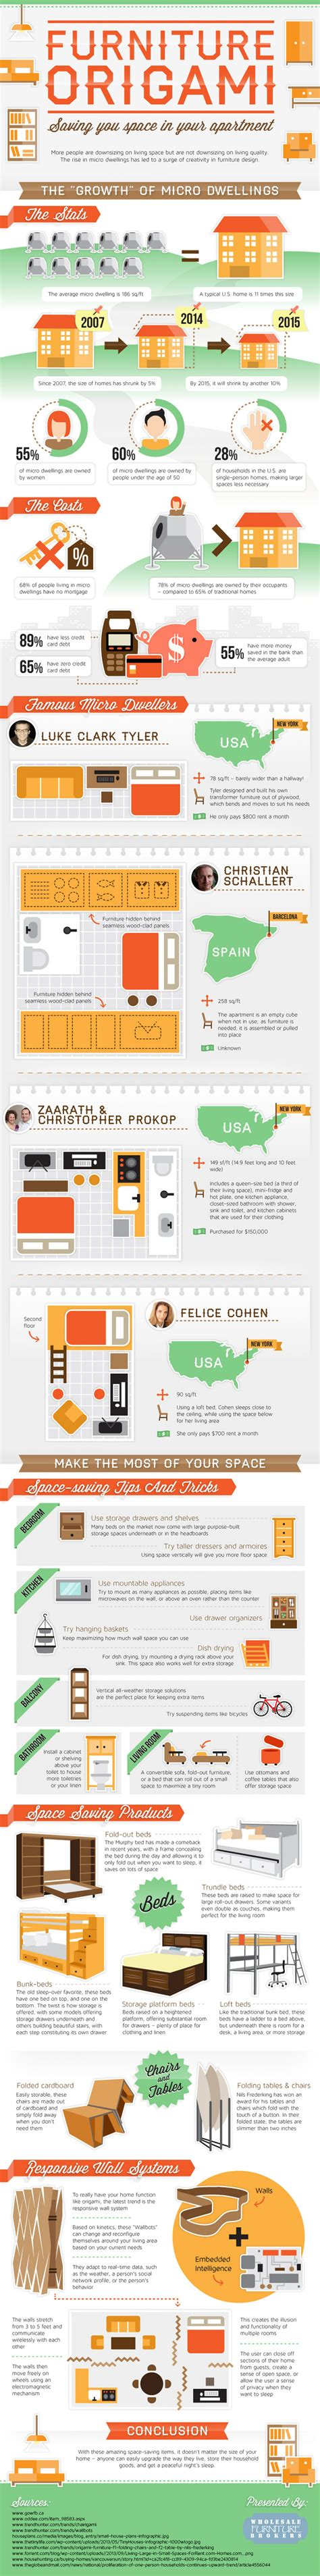 Origami History Timeline - furniture origami saving space in your apartment visual ly